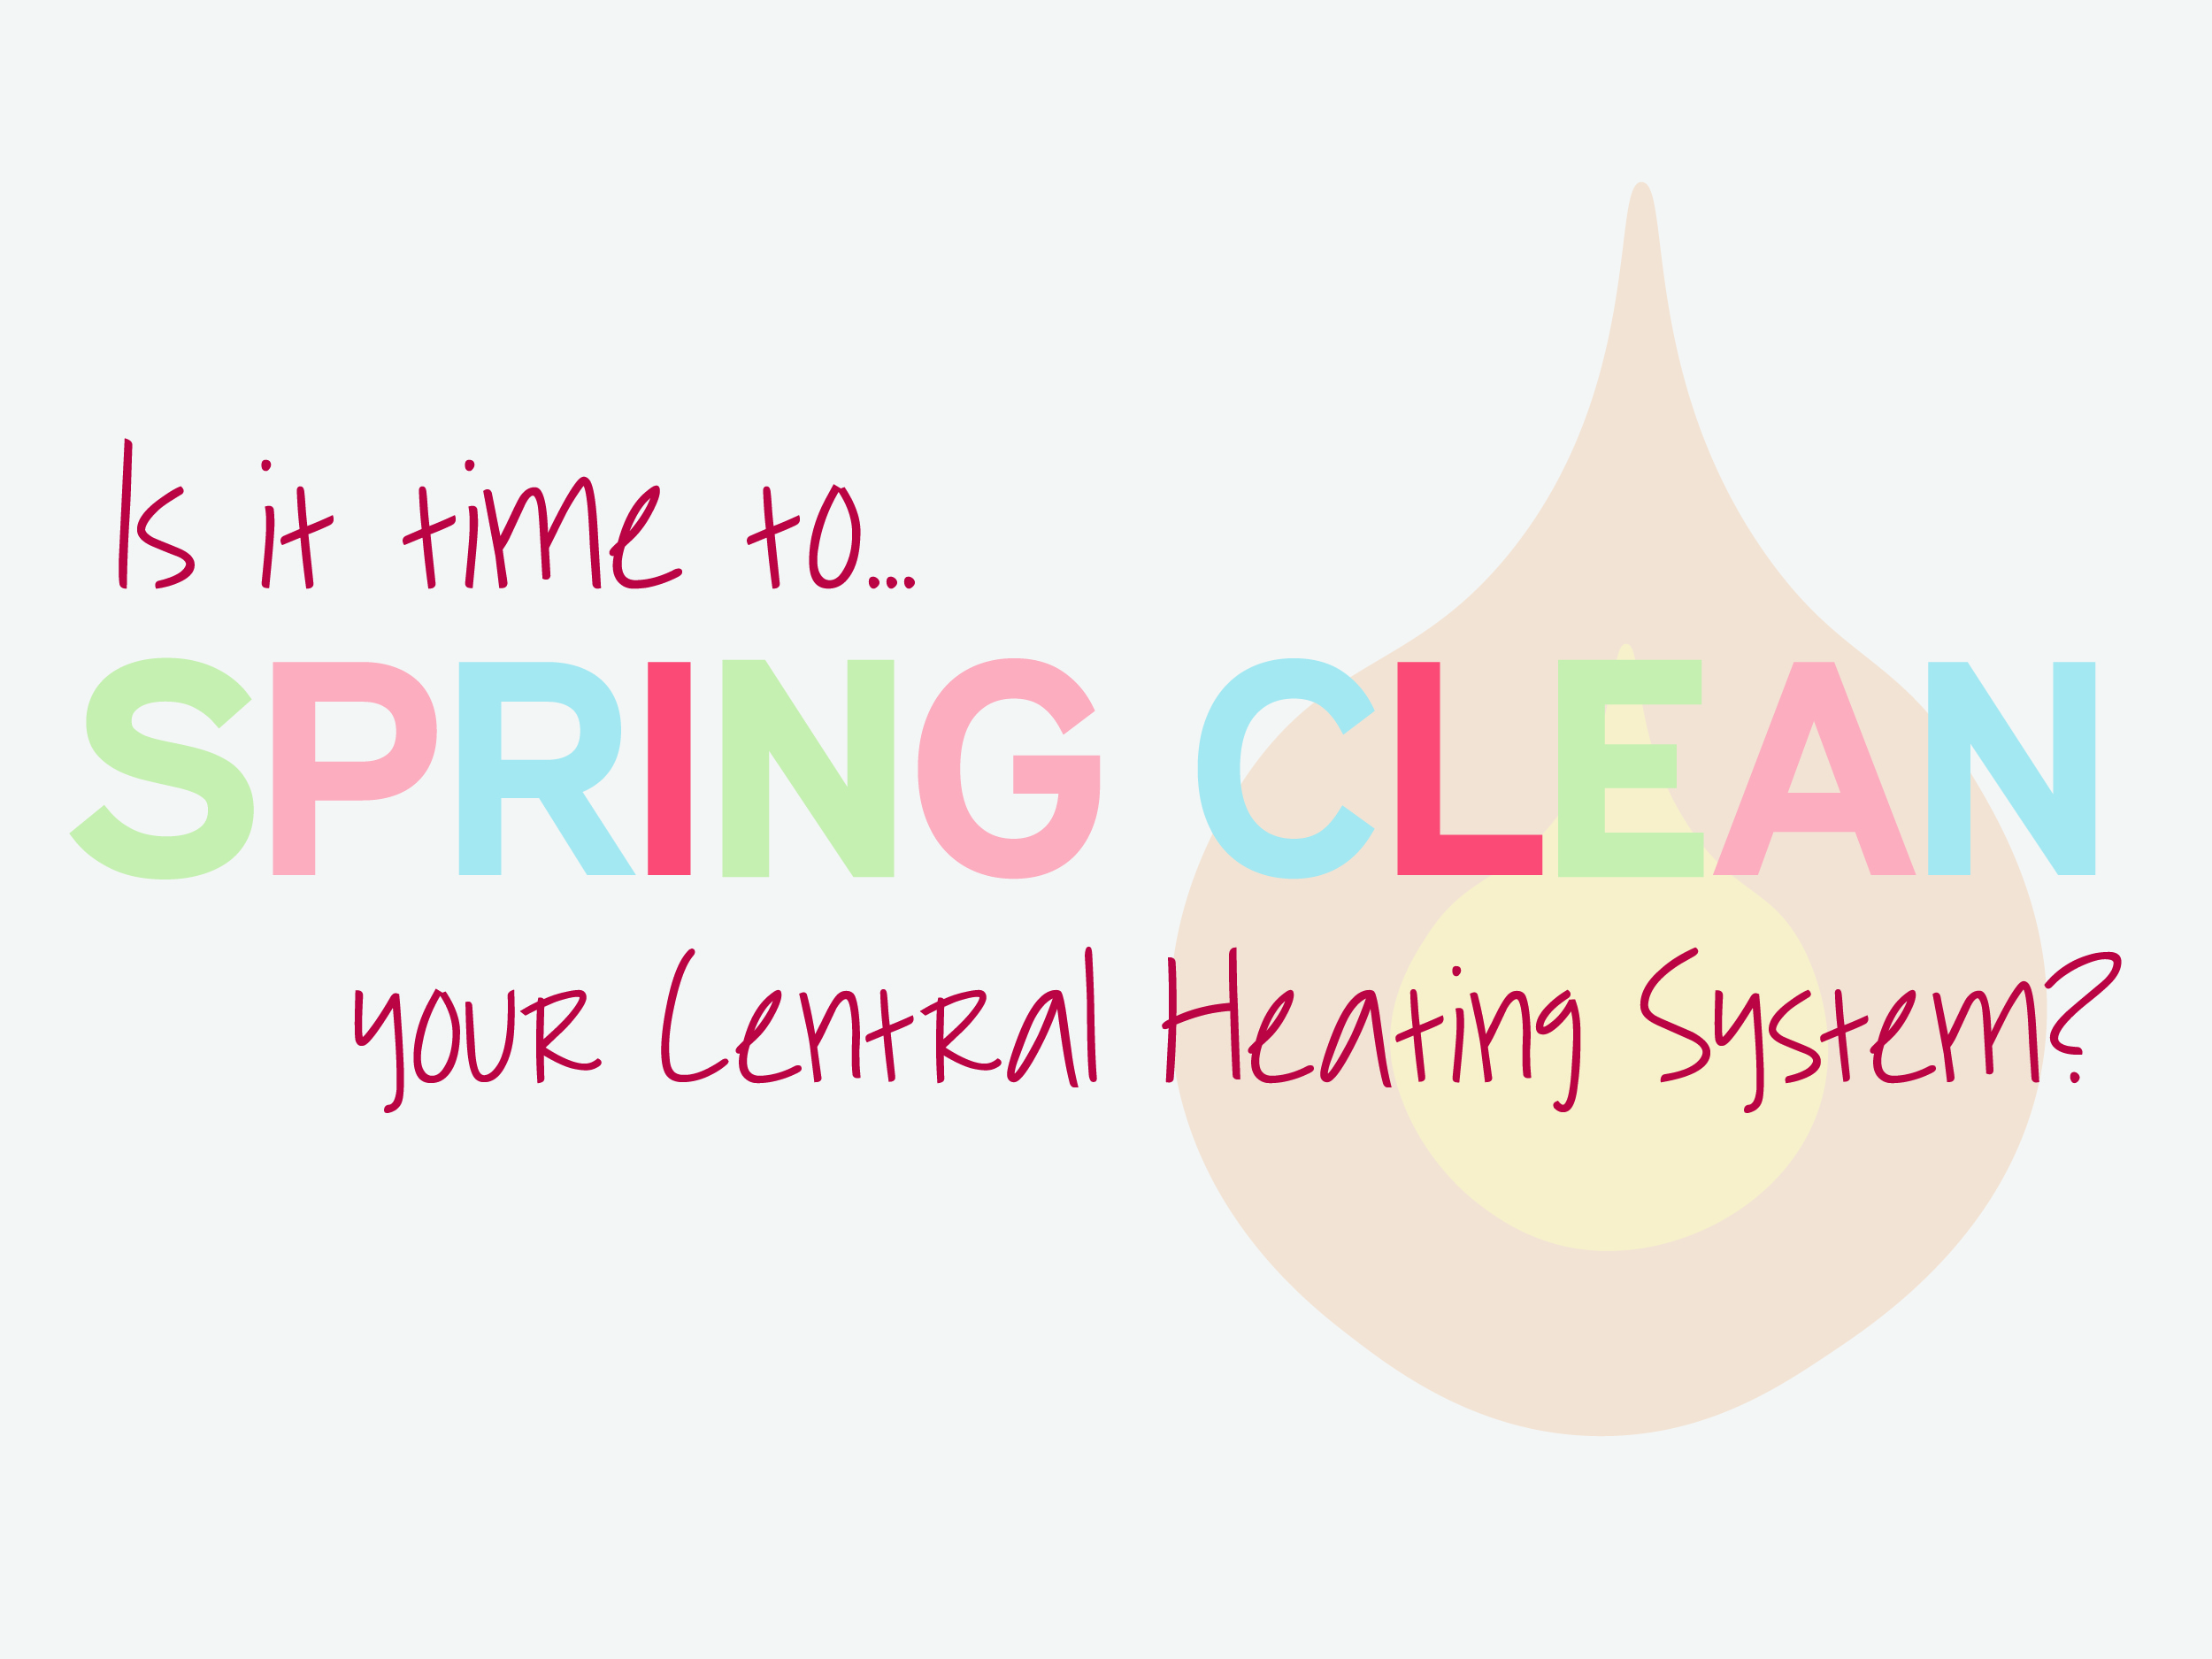 spring clean your central heating system